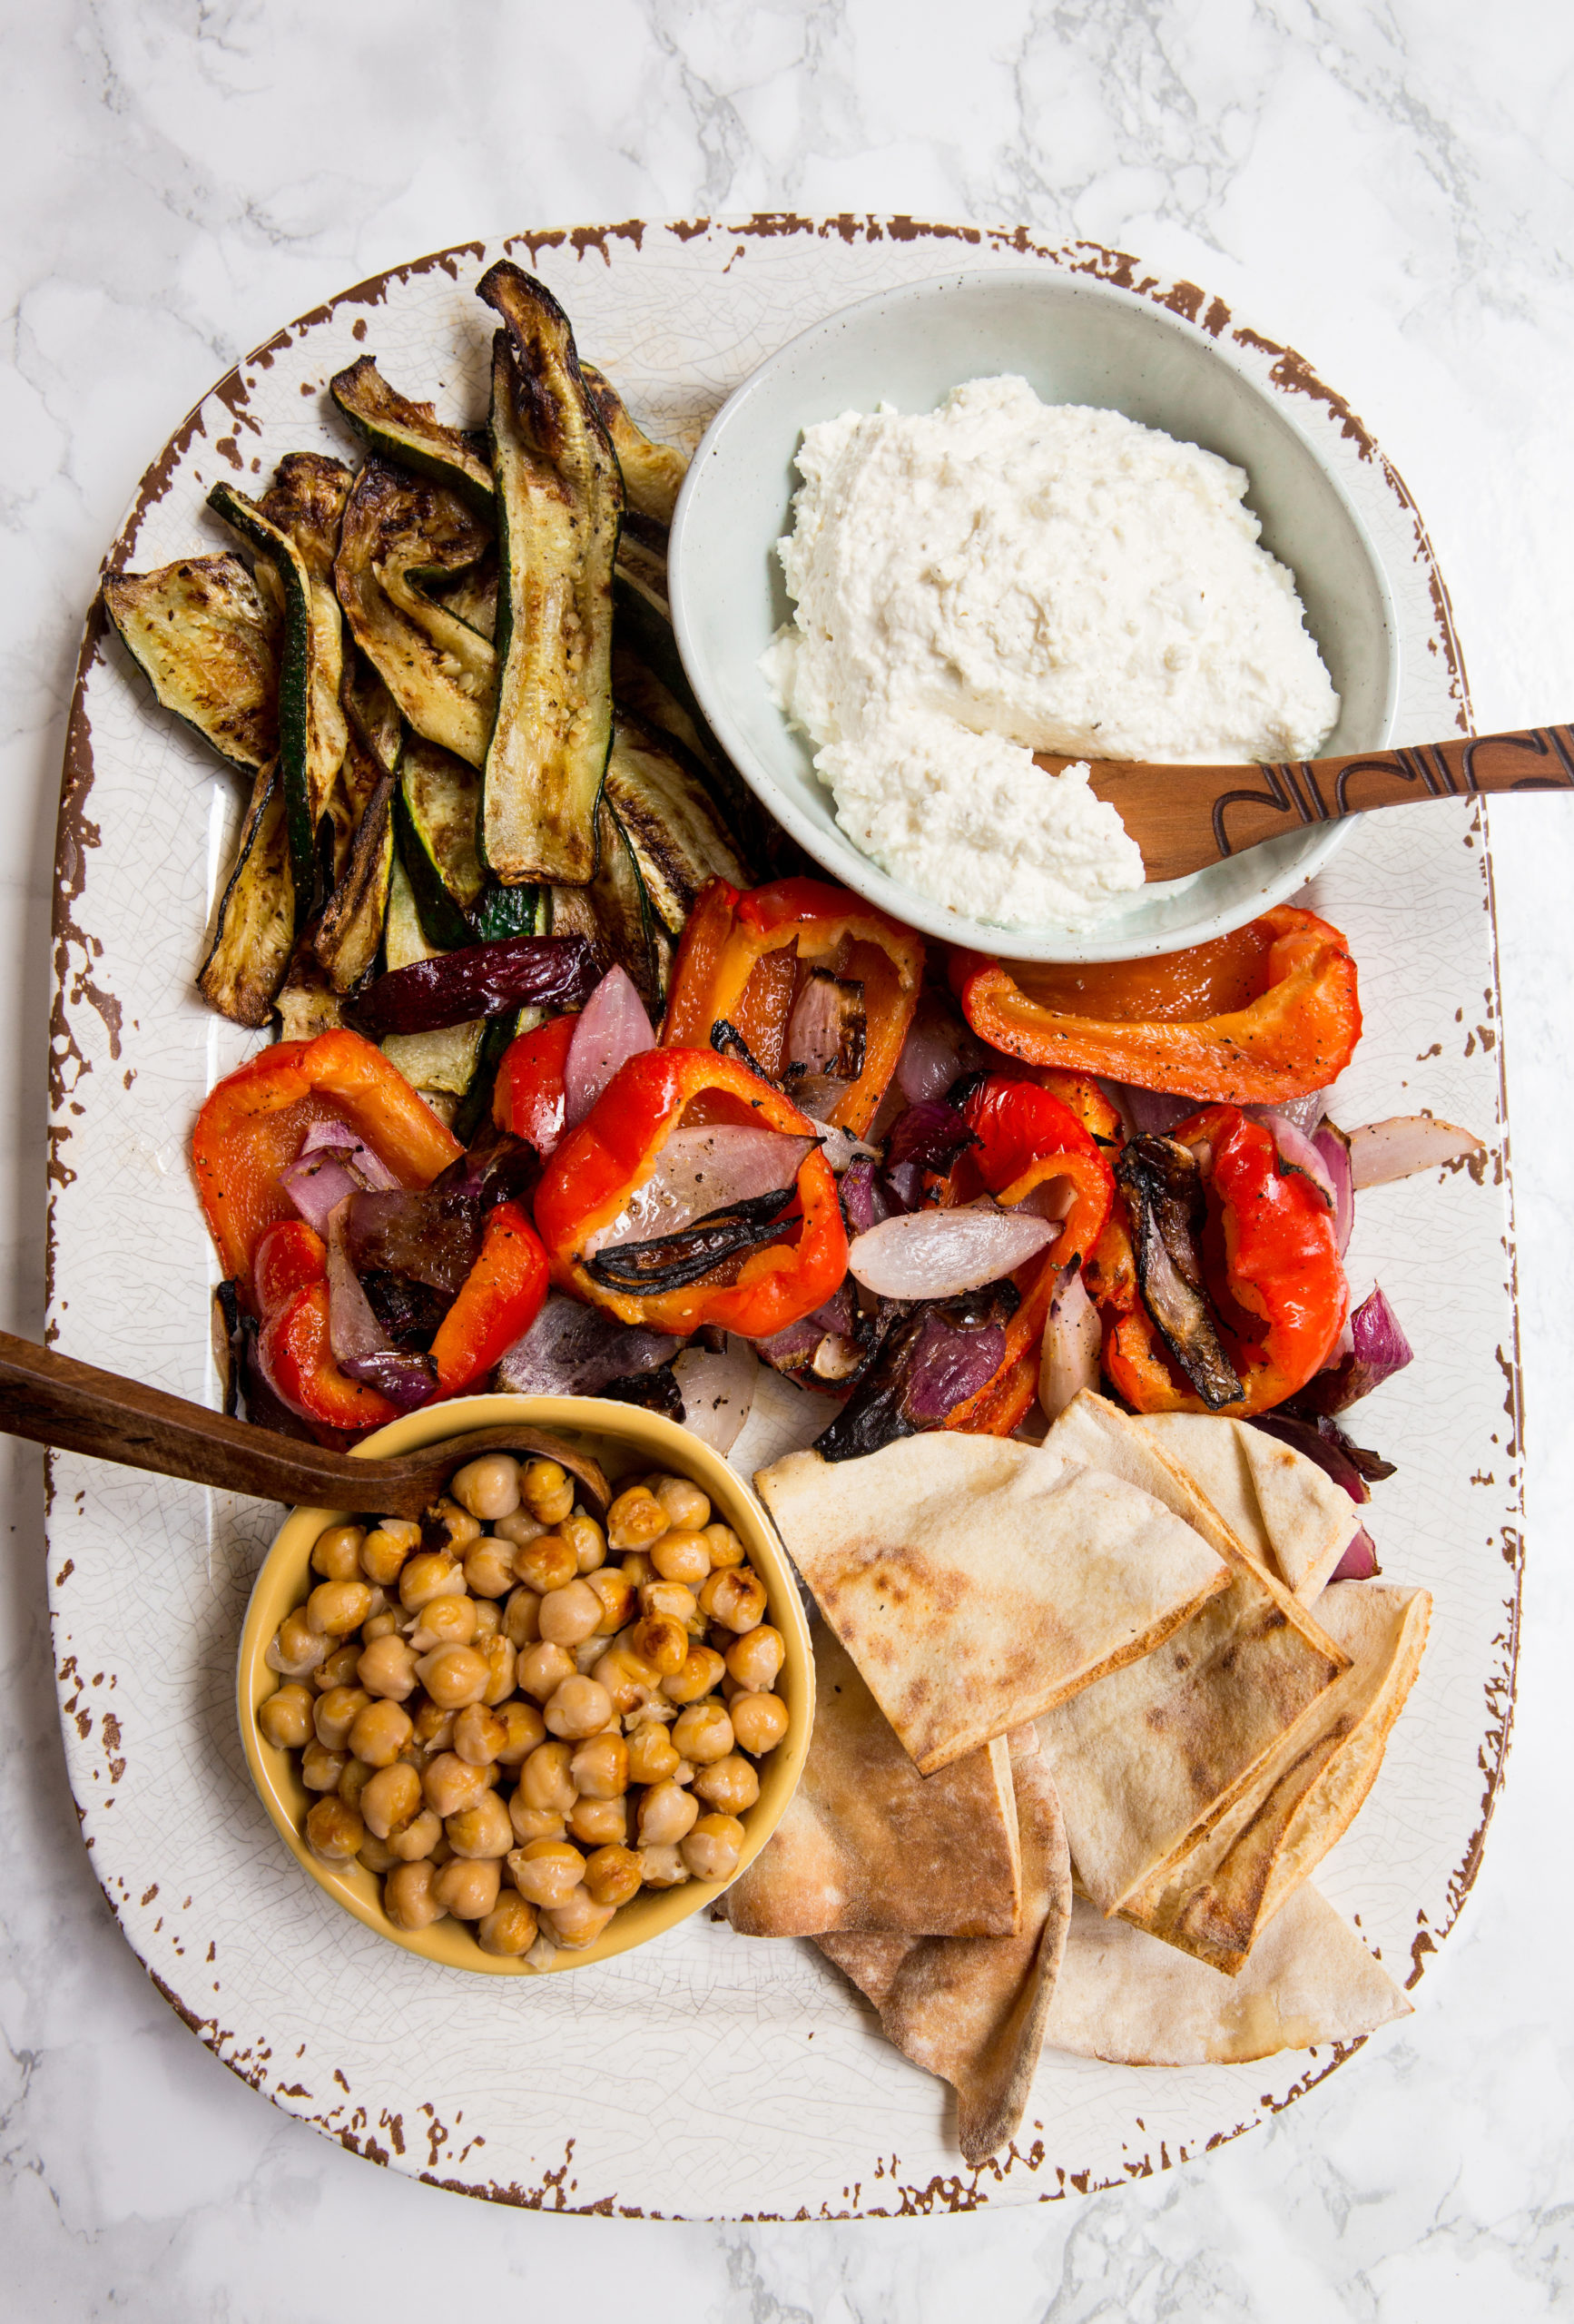 Grilled Vegetable and Chickpea Platter